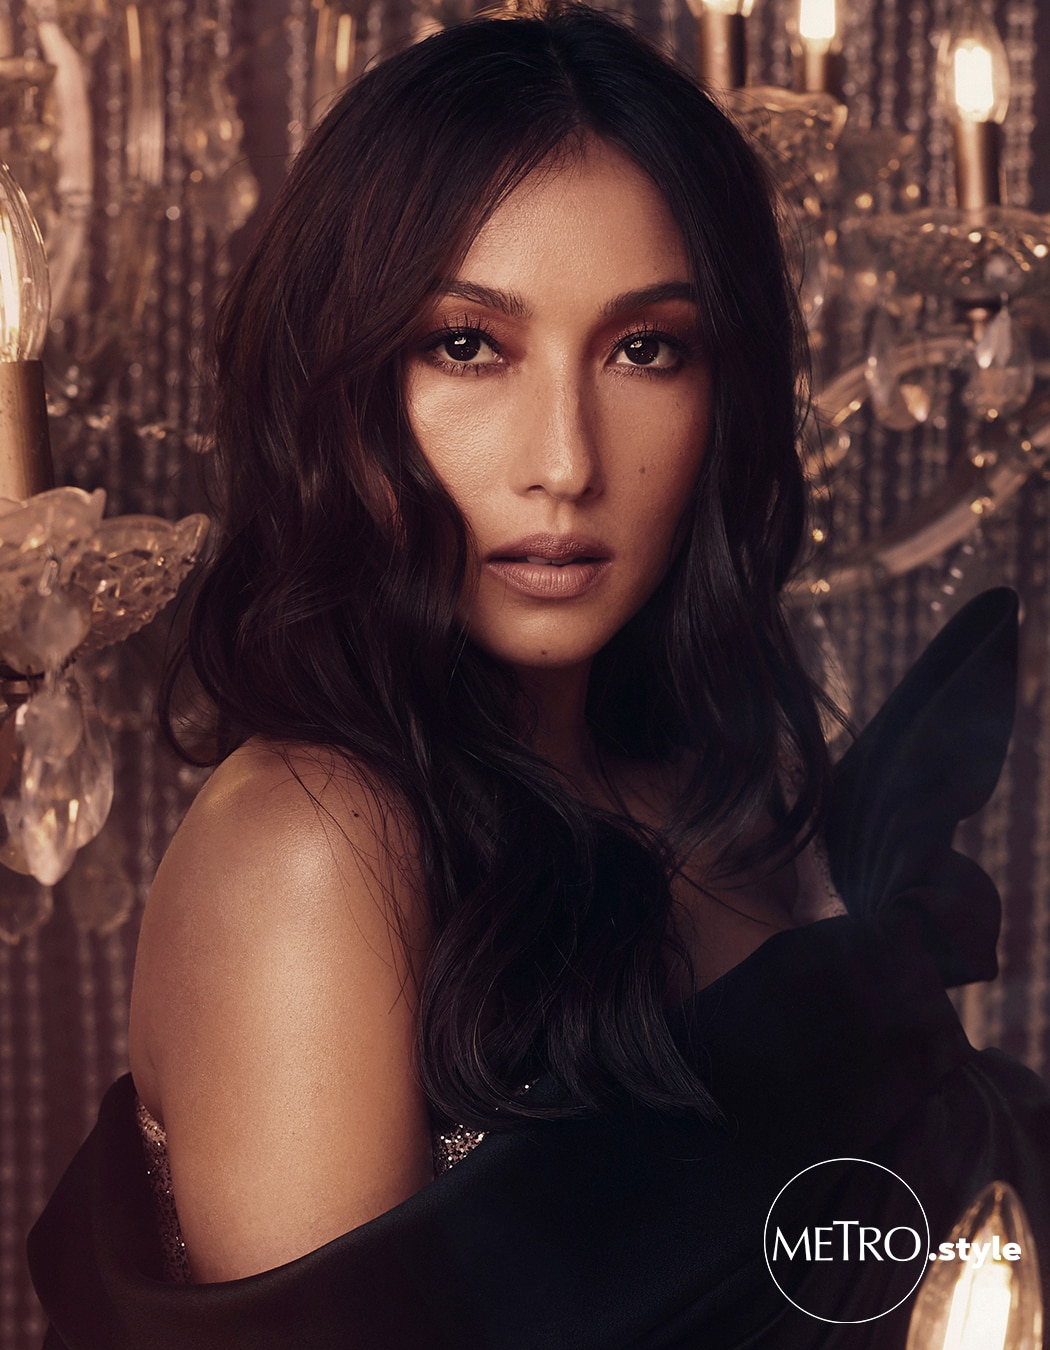 Solenn Heussaff Metro.Style Mother's Day 2020 cover